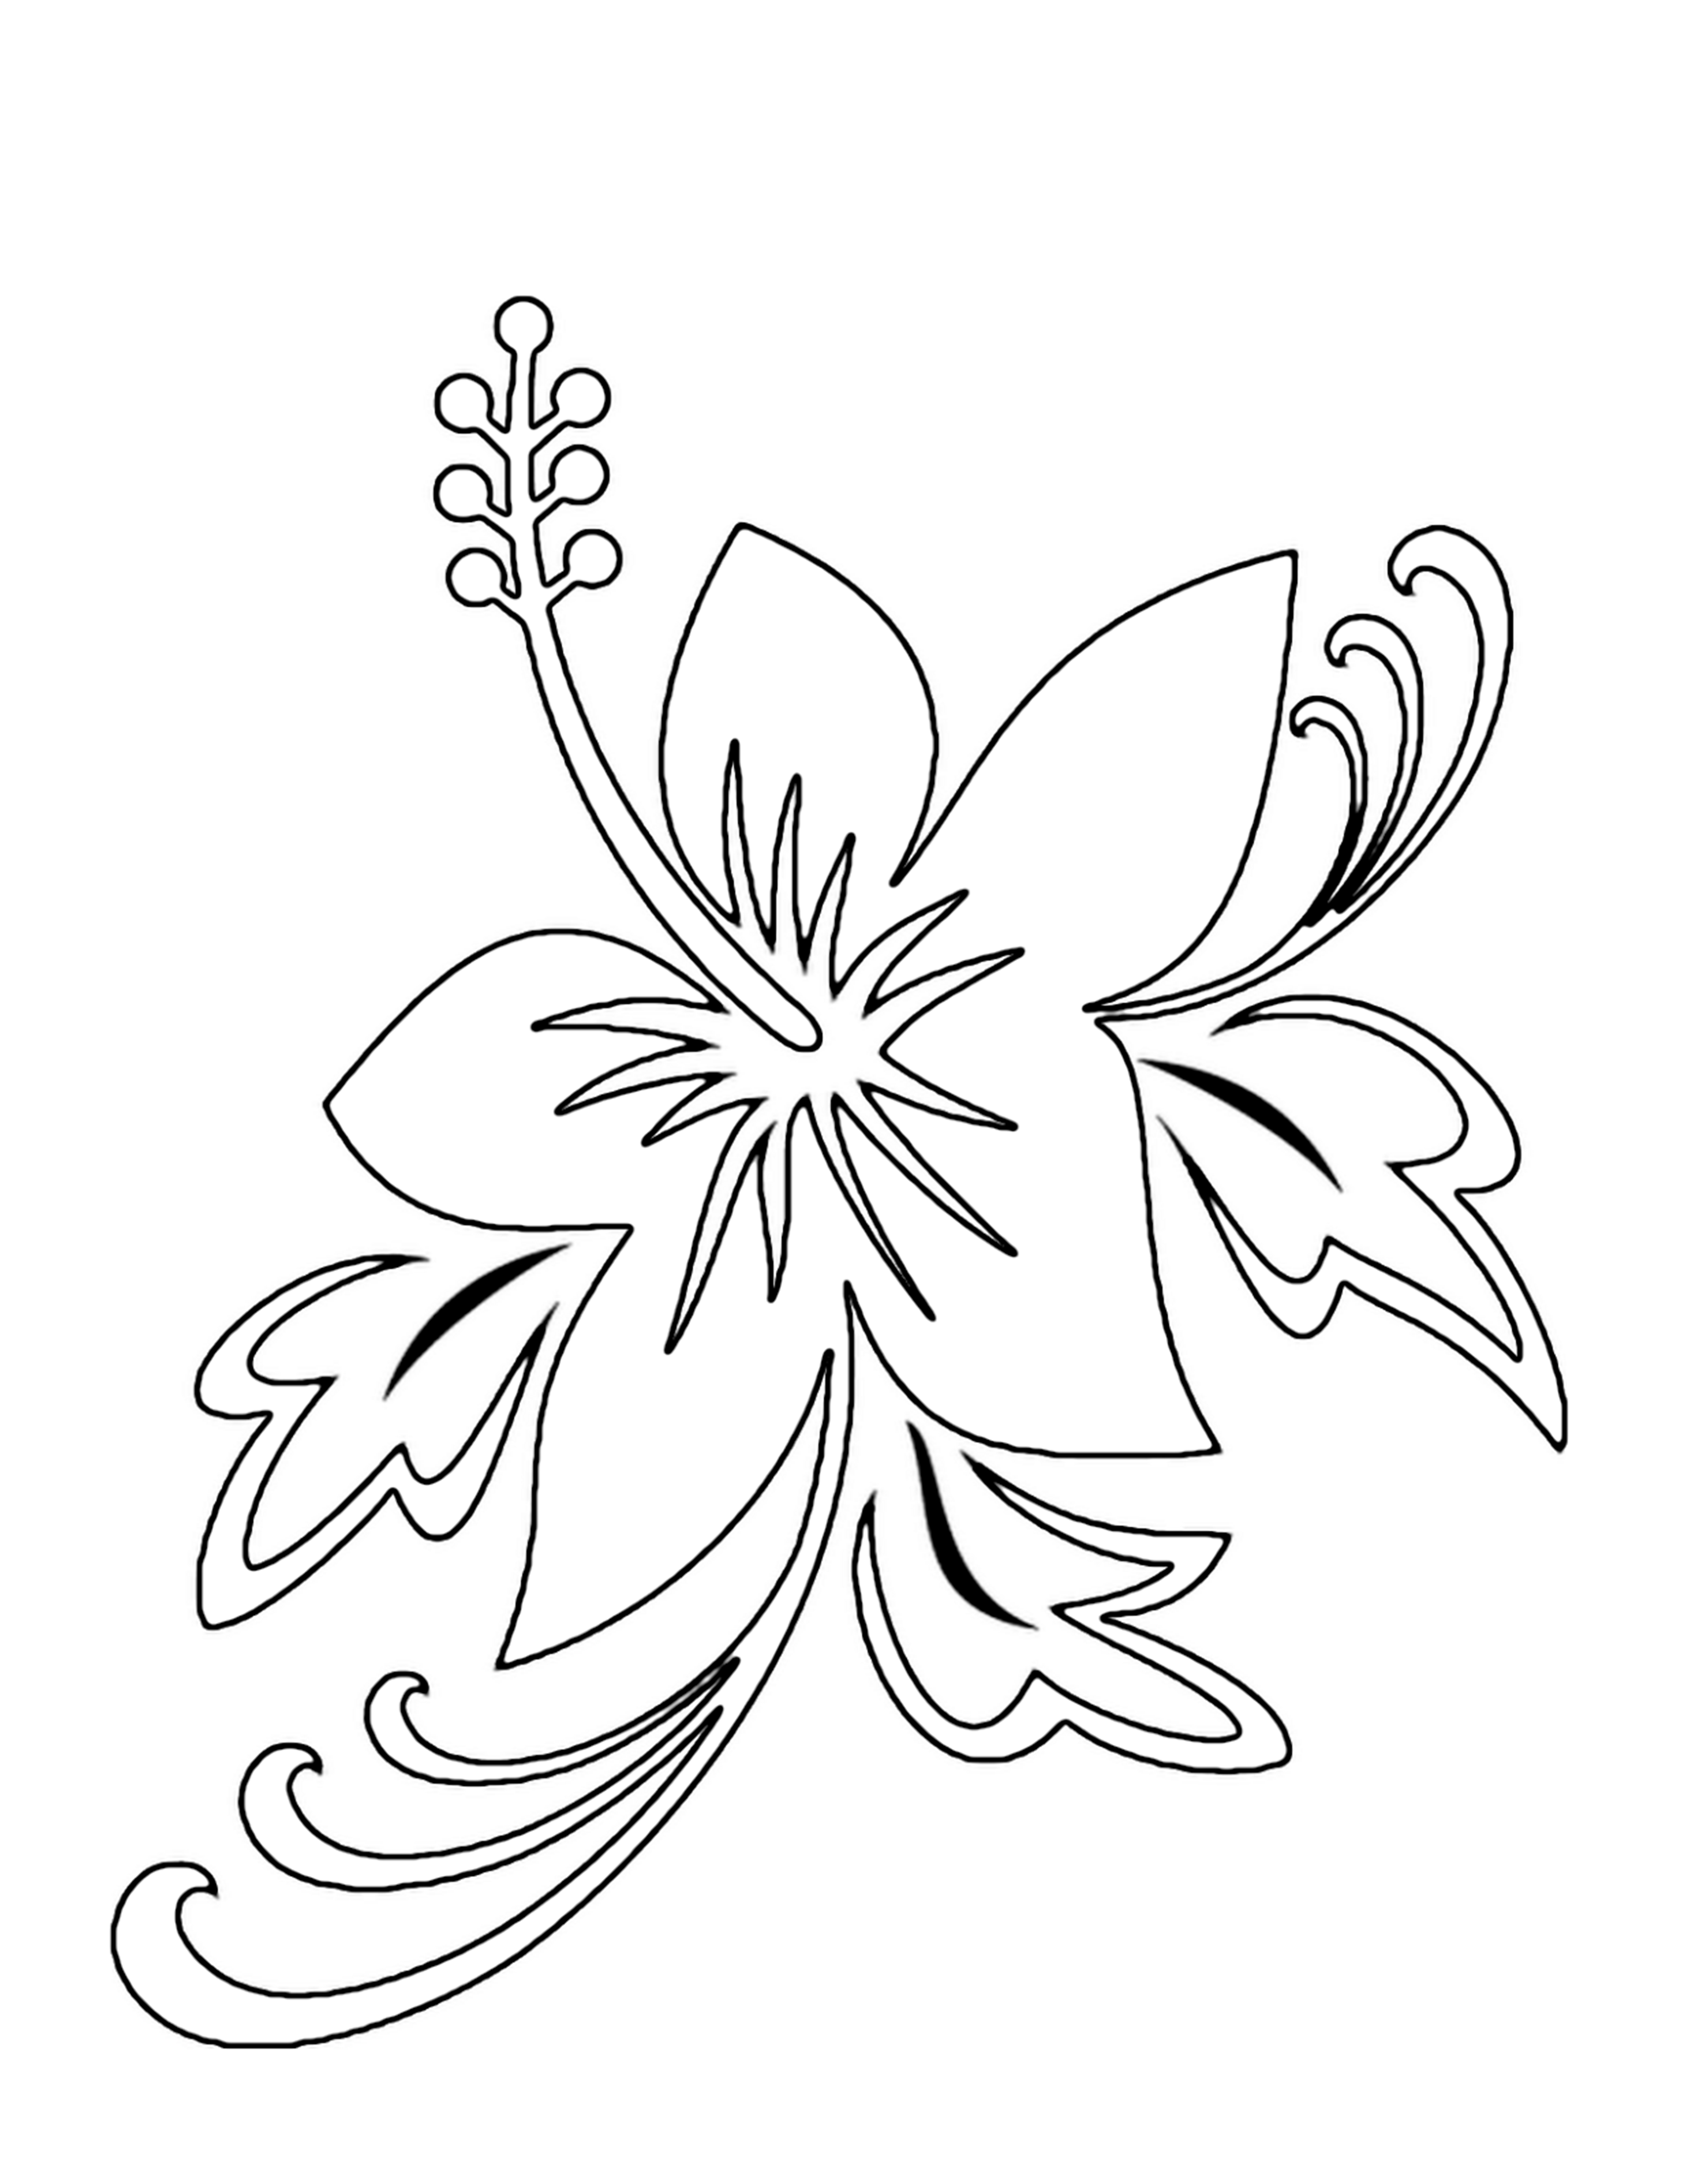 flower coloring page free encouragement flower coloring page printable fox coloring flower page